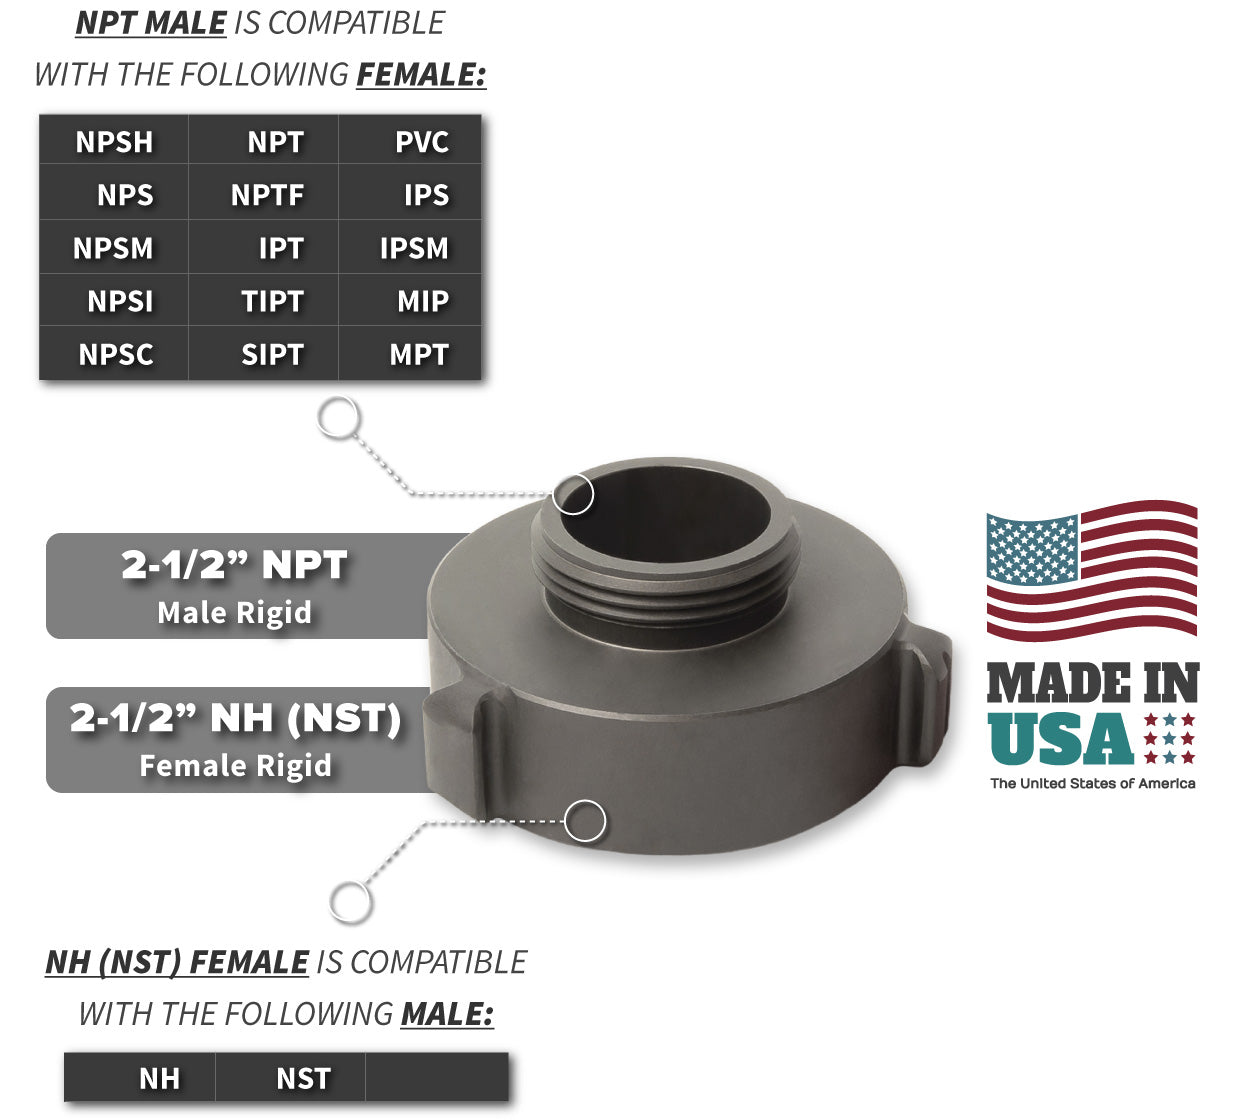 2.5 Inch NH-NST Female x 2.5 Inch NPT Male Compatibility Thread Chart